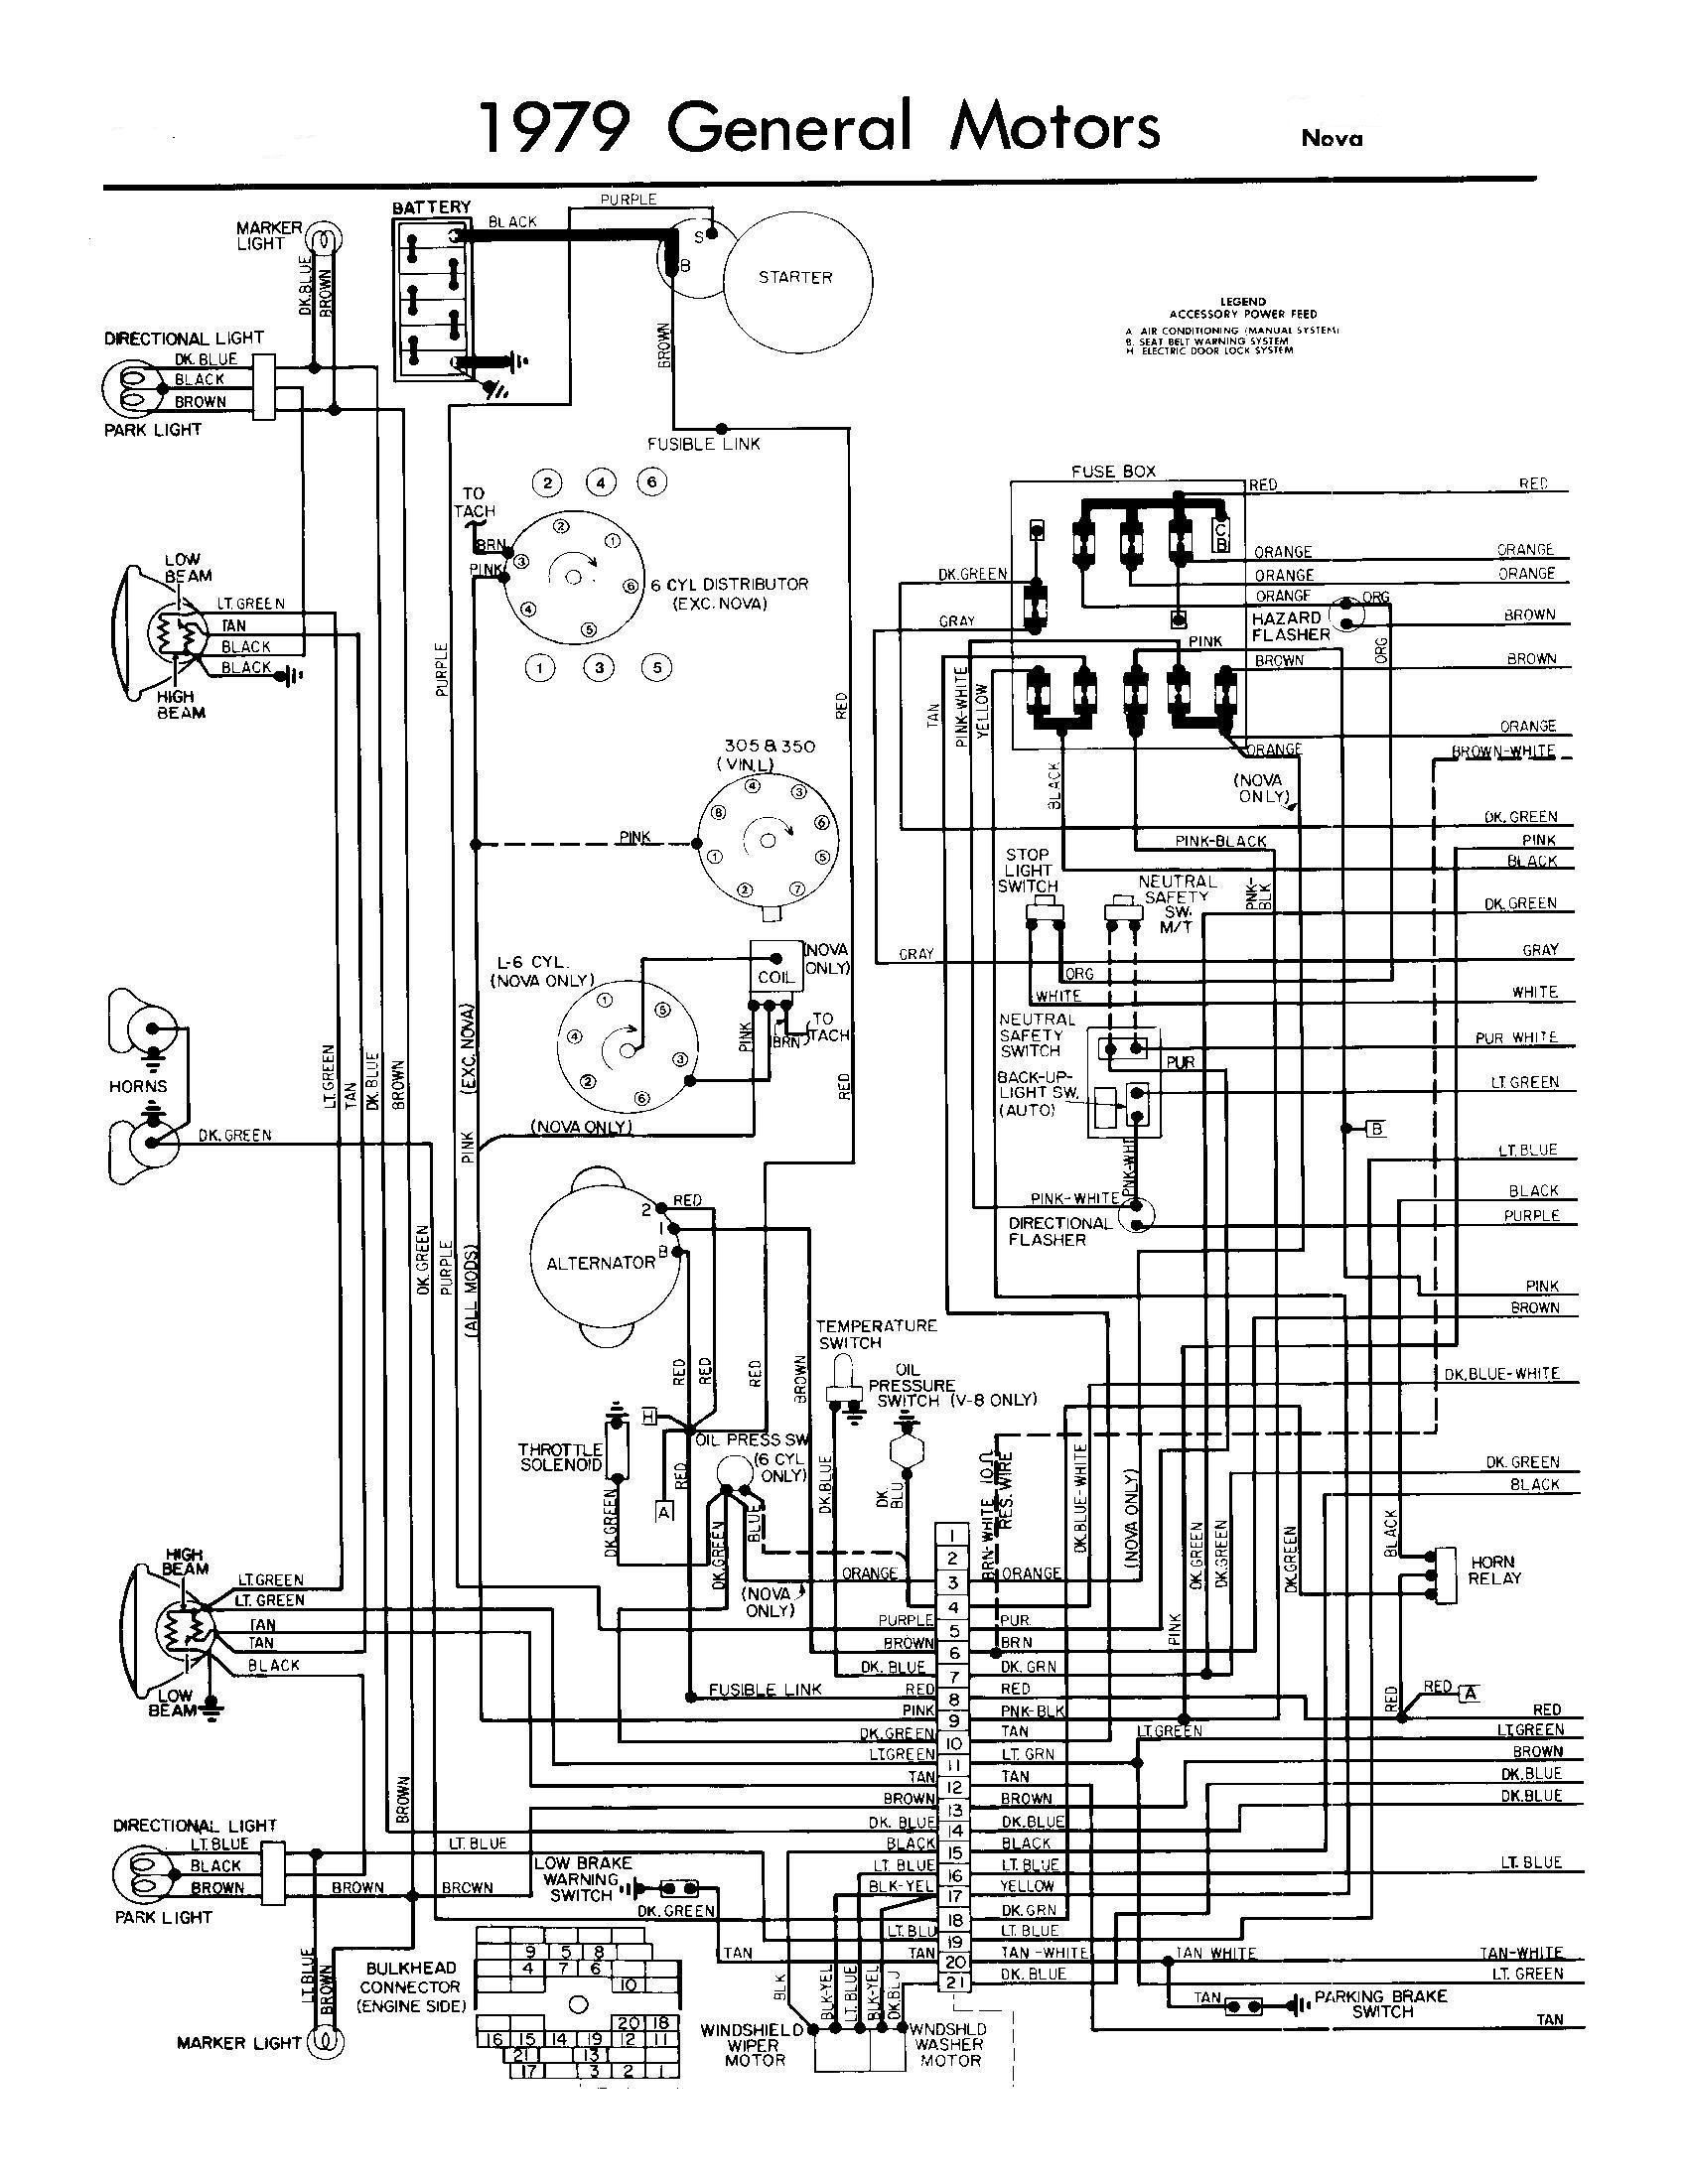 Cool Wrg 6273 Wiring Diagram Mitsubishi Kuda Wiring Cloud Rectuggs Outletorg